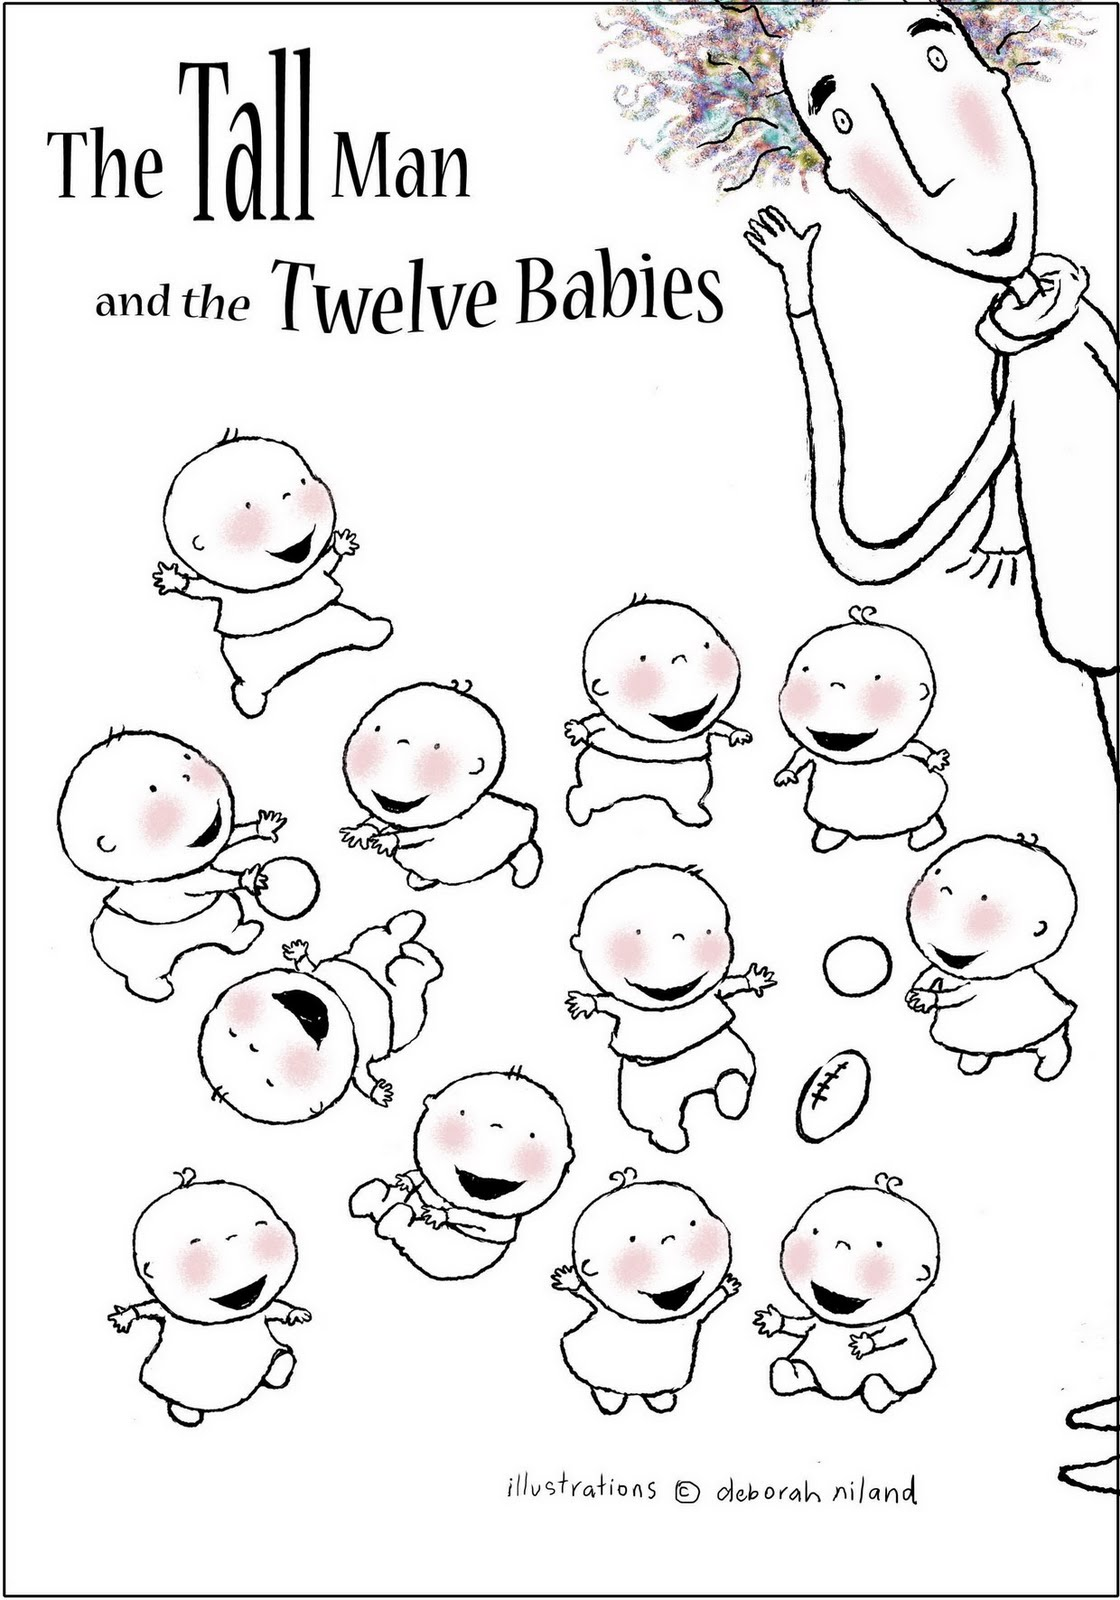 Colour activities babies - Colour All The Babies In Different Colours See How Unalike You Can Make Them The Tall Man And The Babies Like To Be Bright And Happy